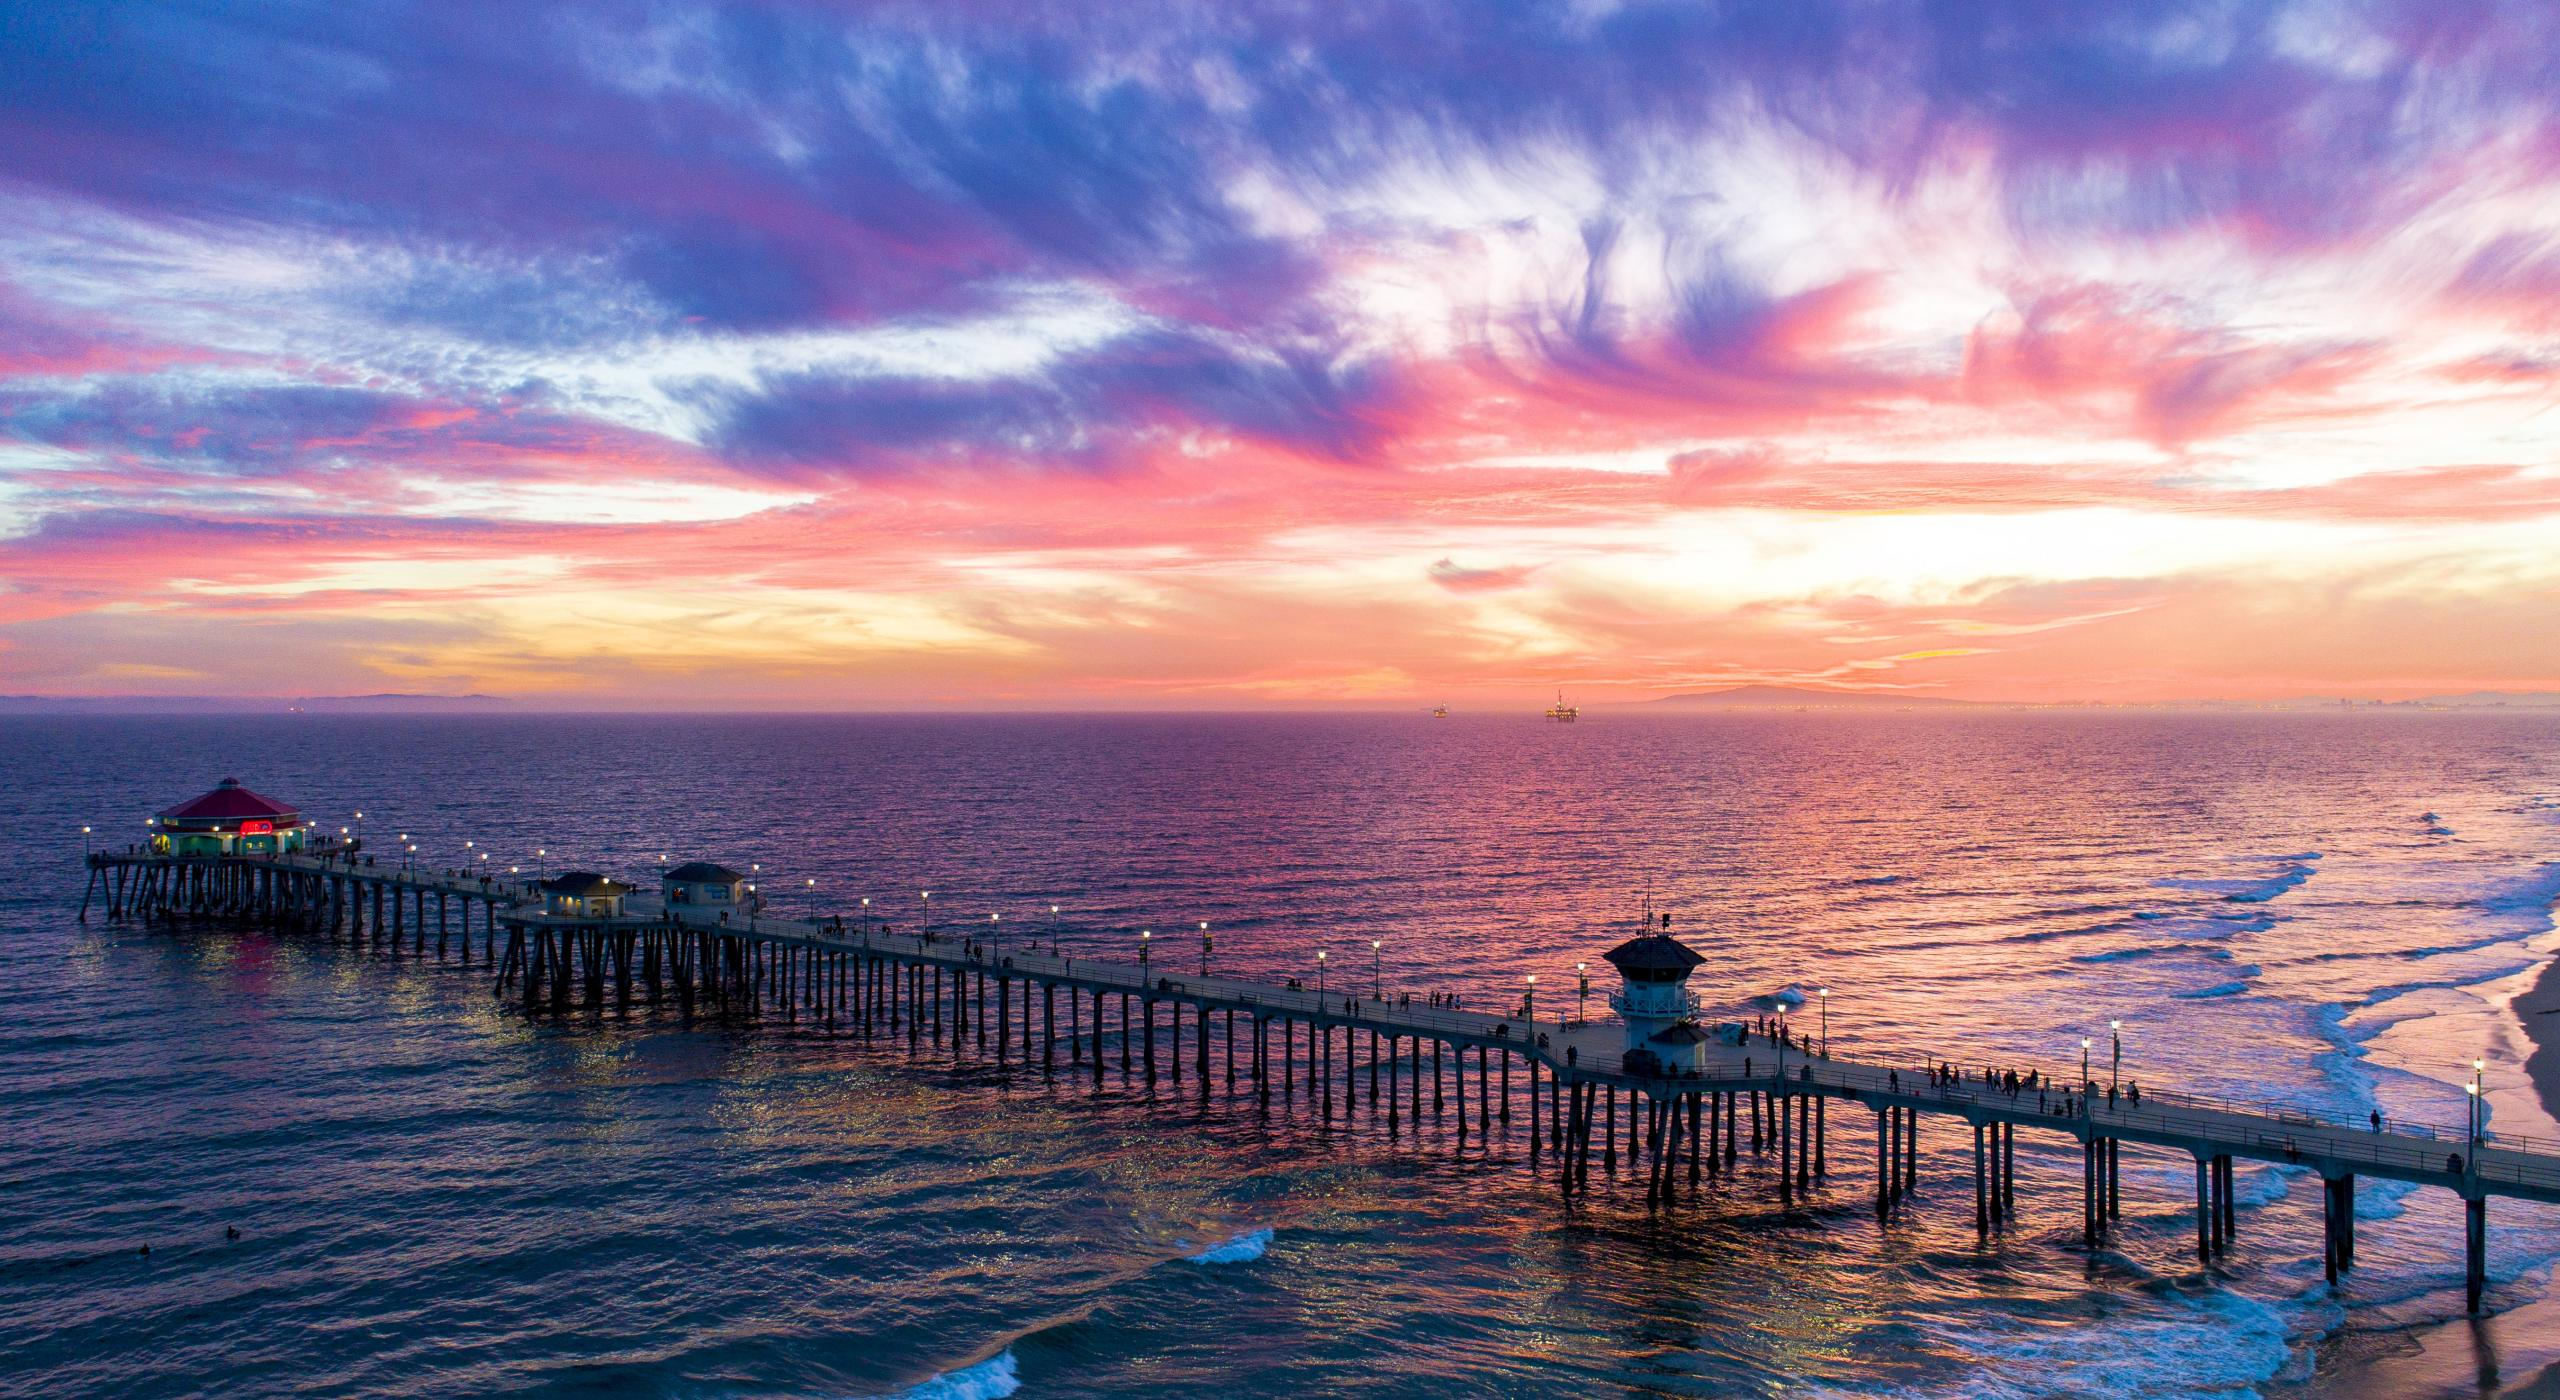 Huntington Beach, California: Laid Back Fun and Beach Culture